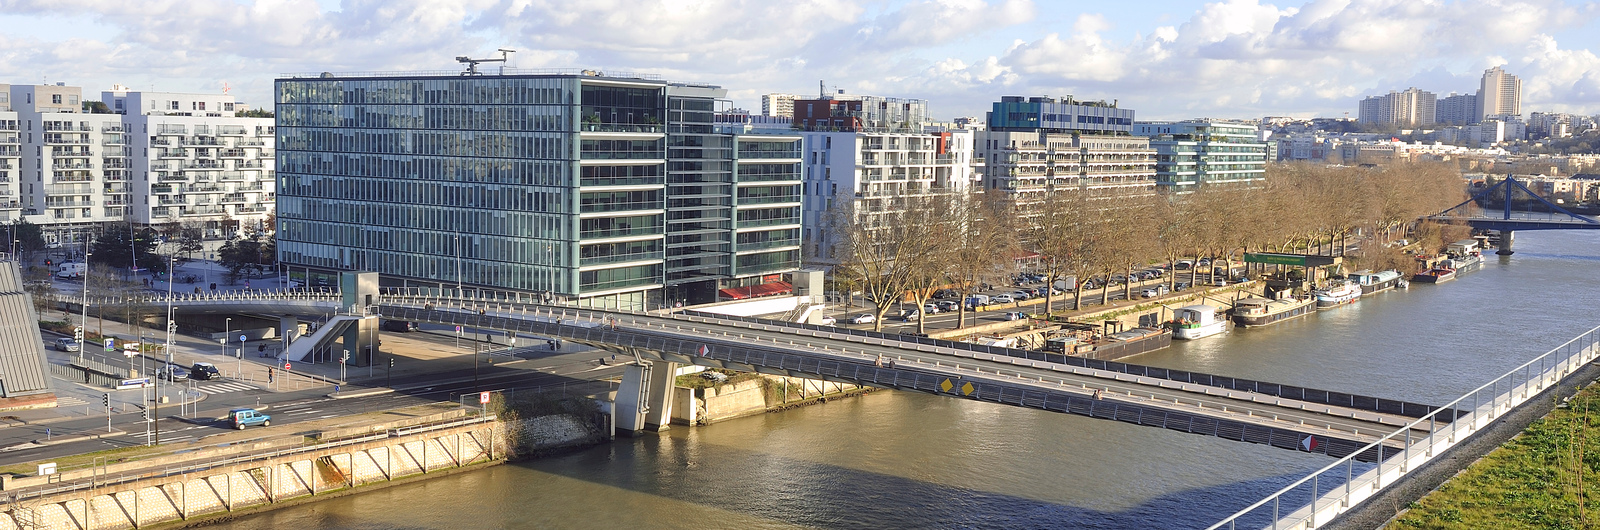 boulogne billancourt city header